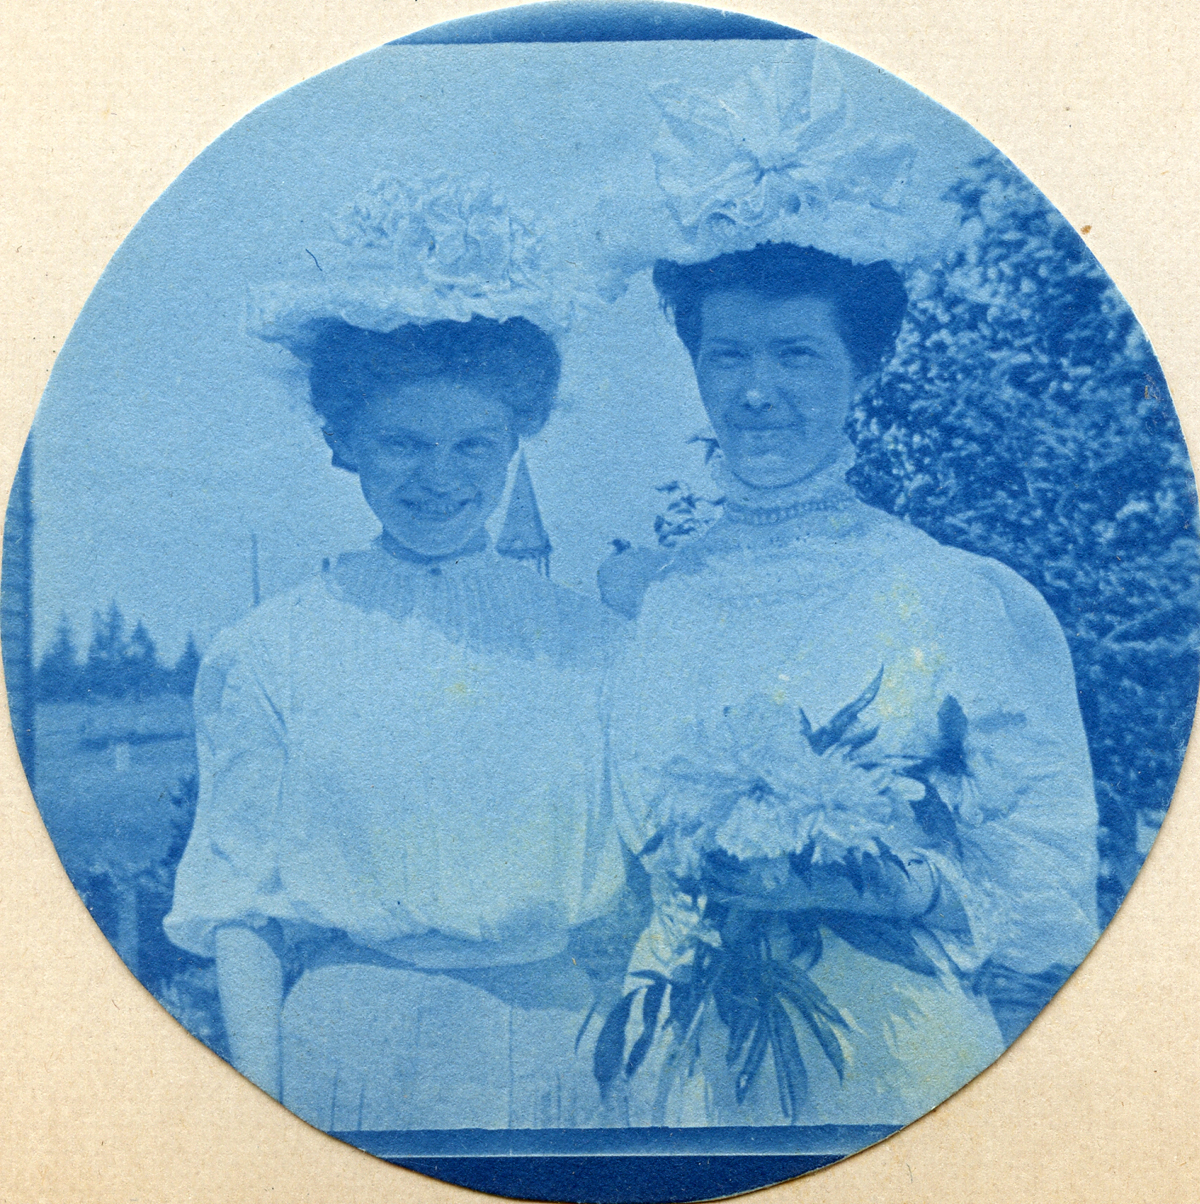 Two Carroll Sisters--Kate and Beatrice